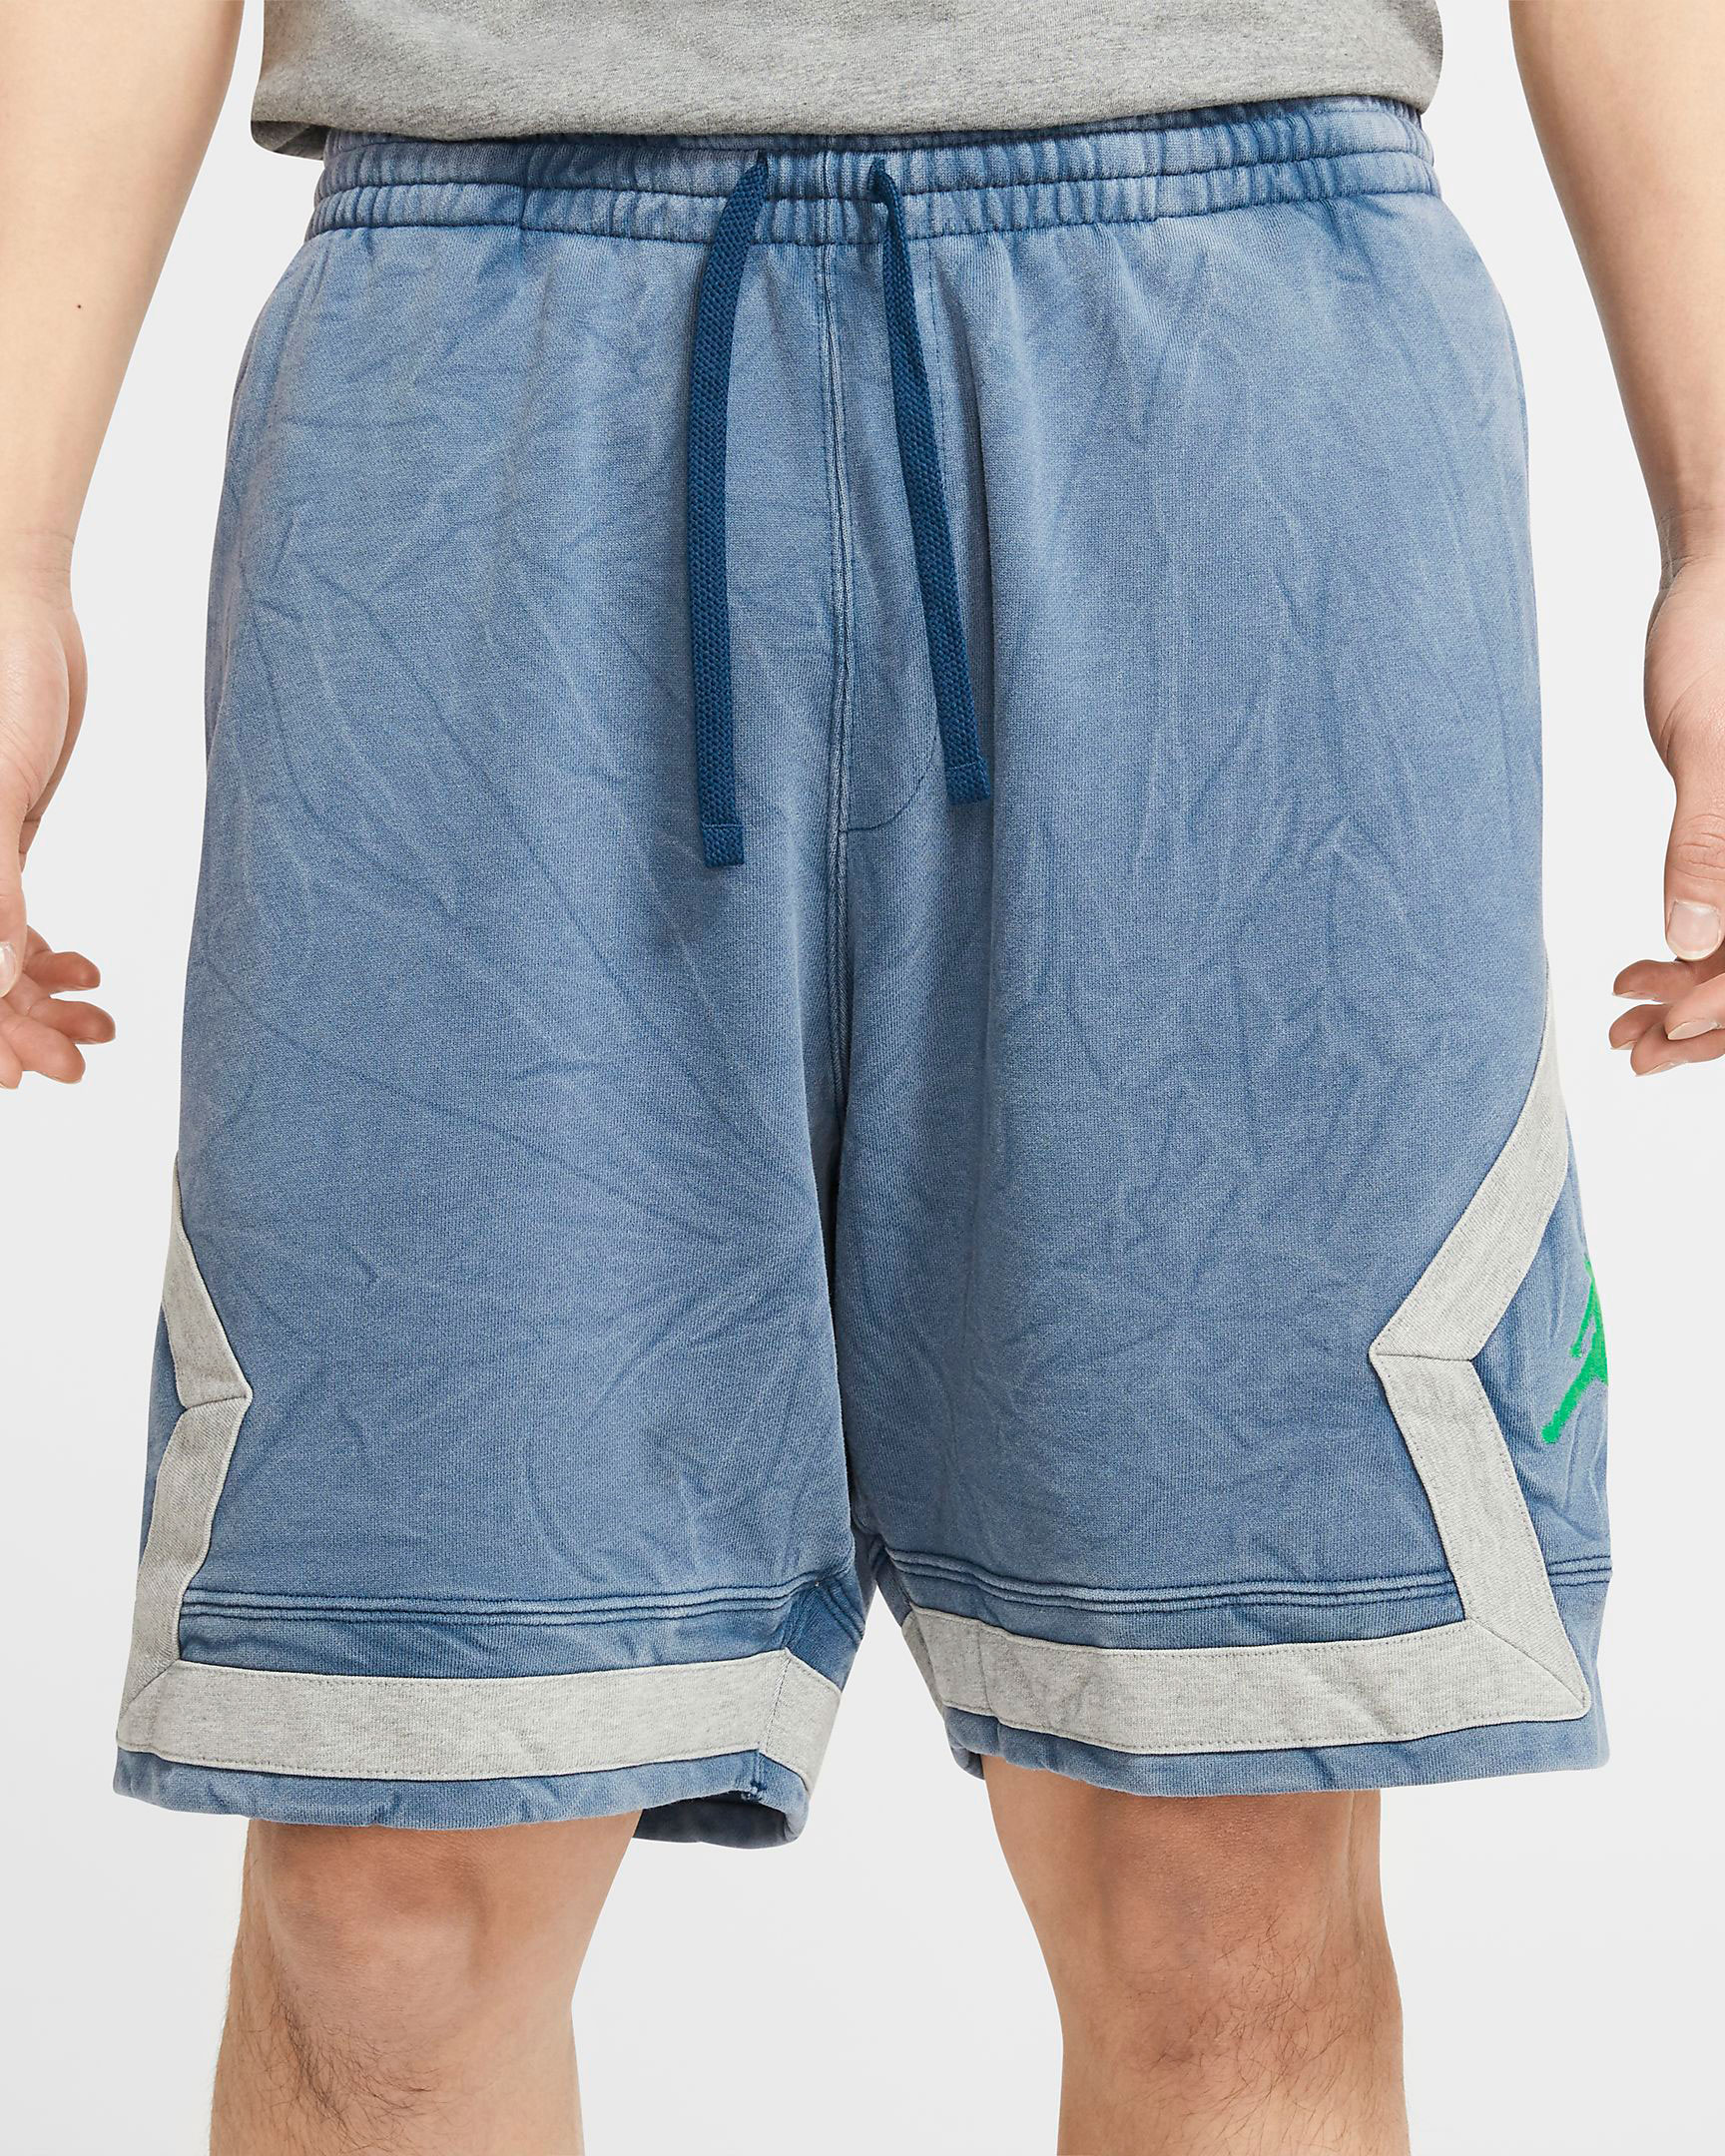 flint-air-jordan-13-shorts-blue-grey-1